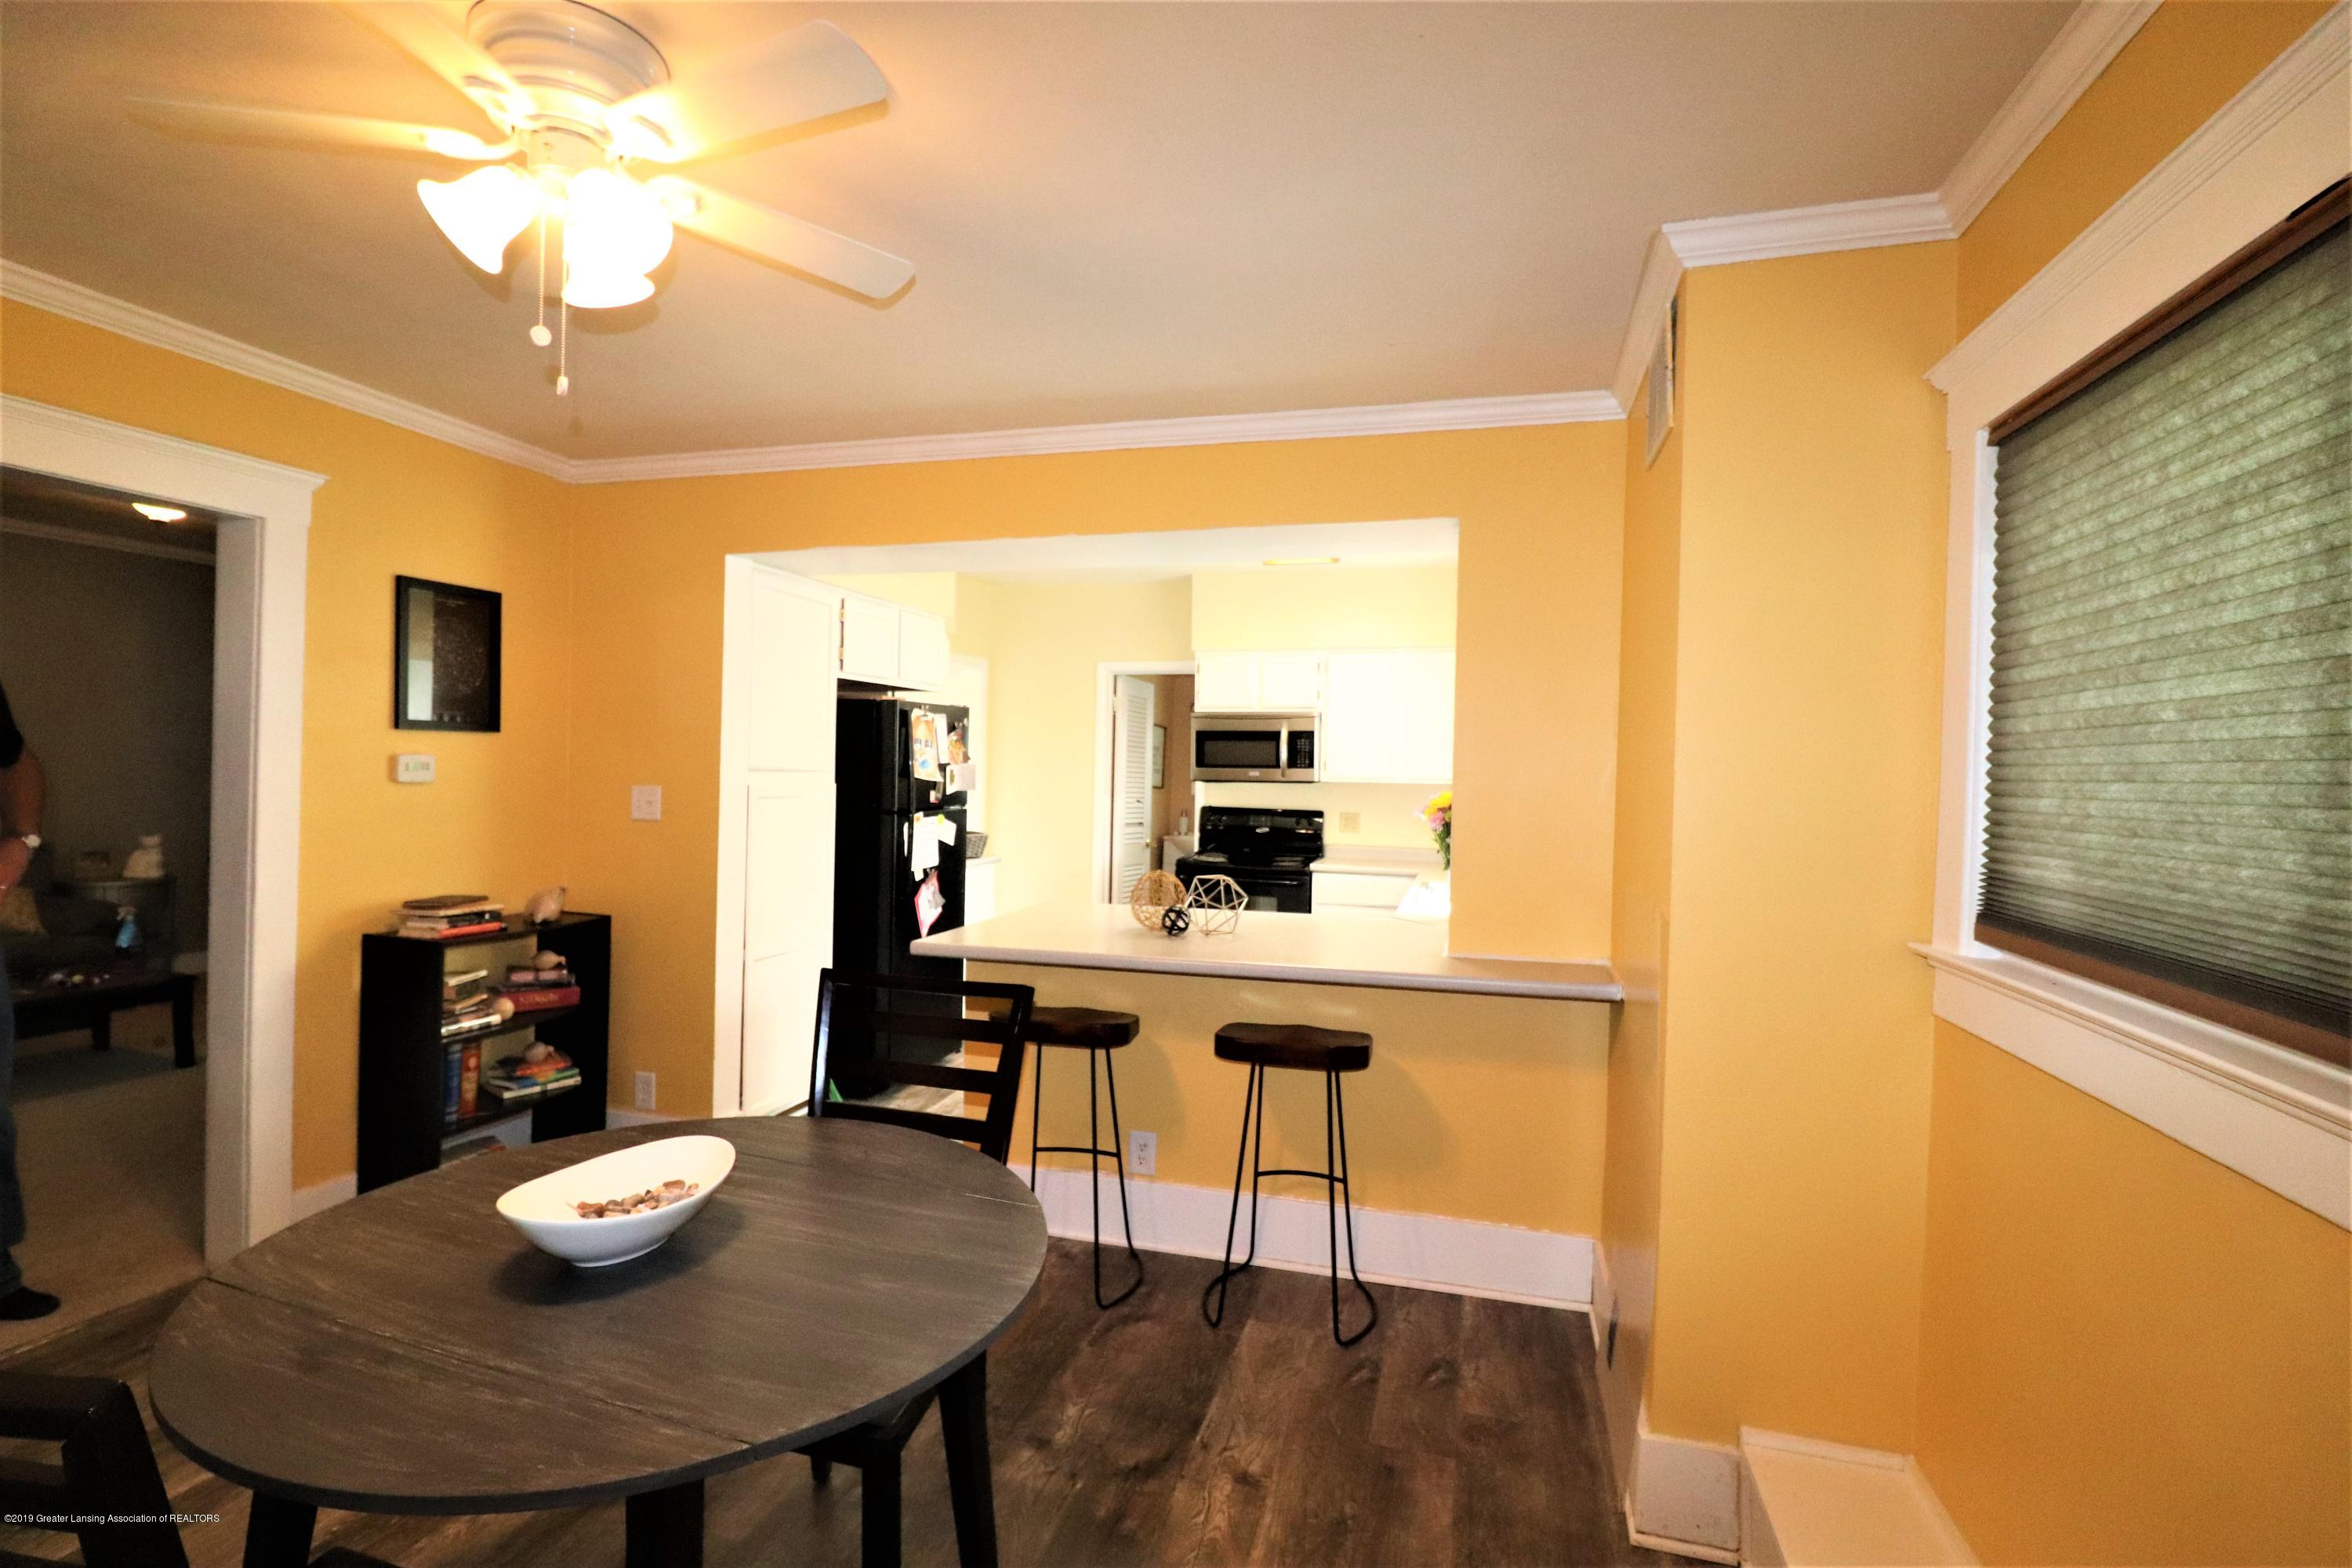 515 W Morrell St - 9 Dining 2 kitchen - 9